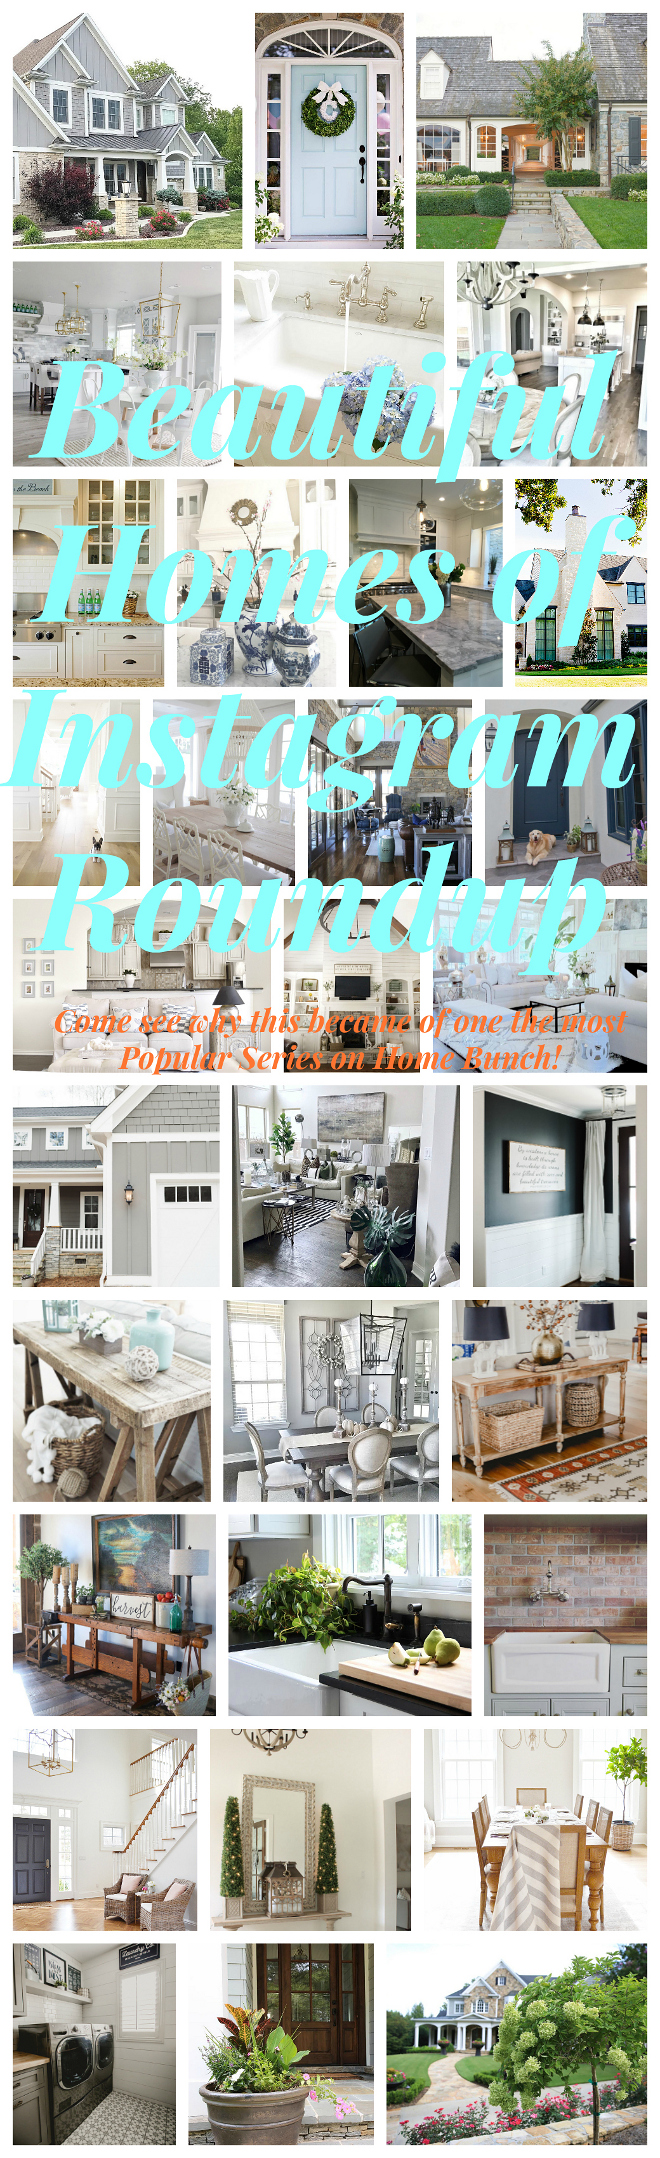 Beautiful Homes of Instagram Roundup. Beautiful Homes of Instagram Roundup #BeautifulHomes #instagram #Roundup